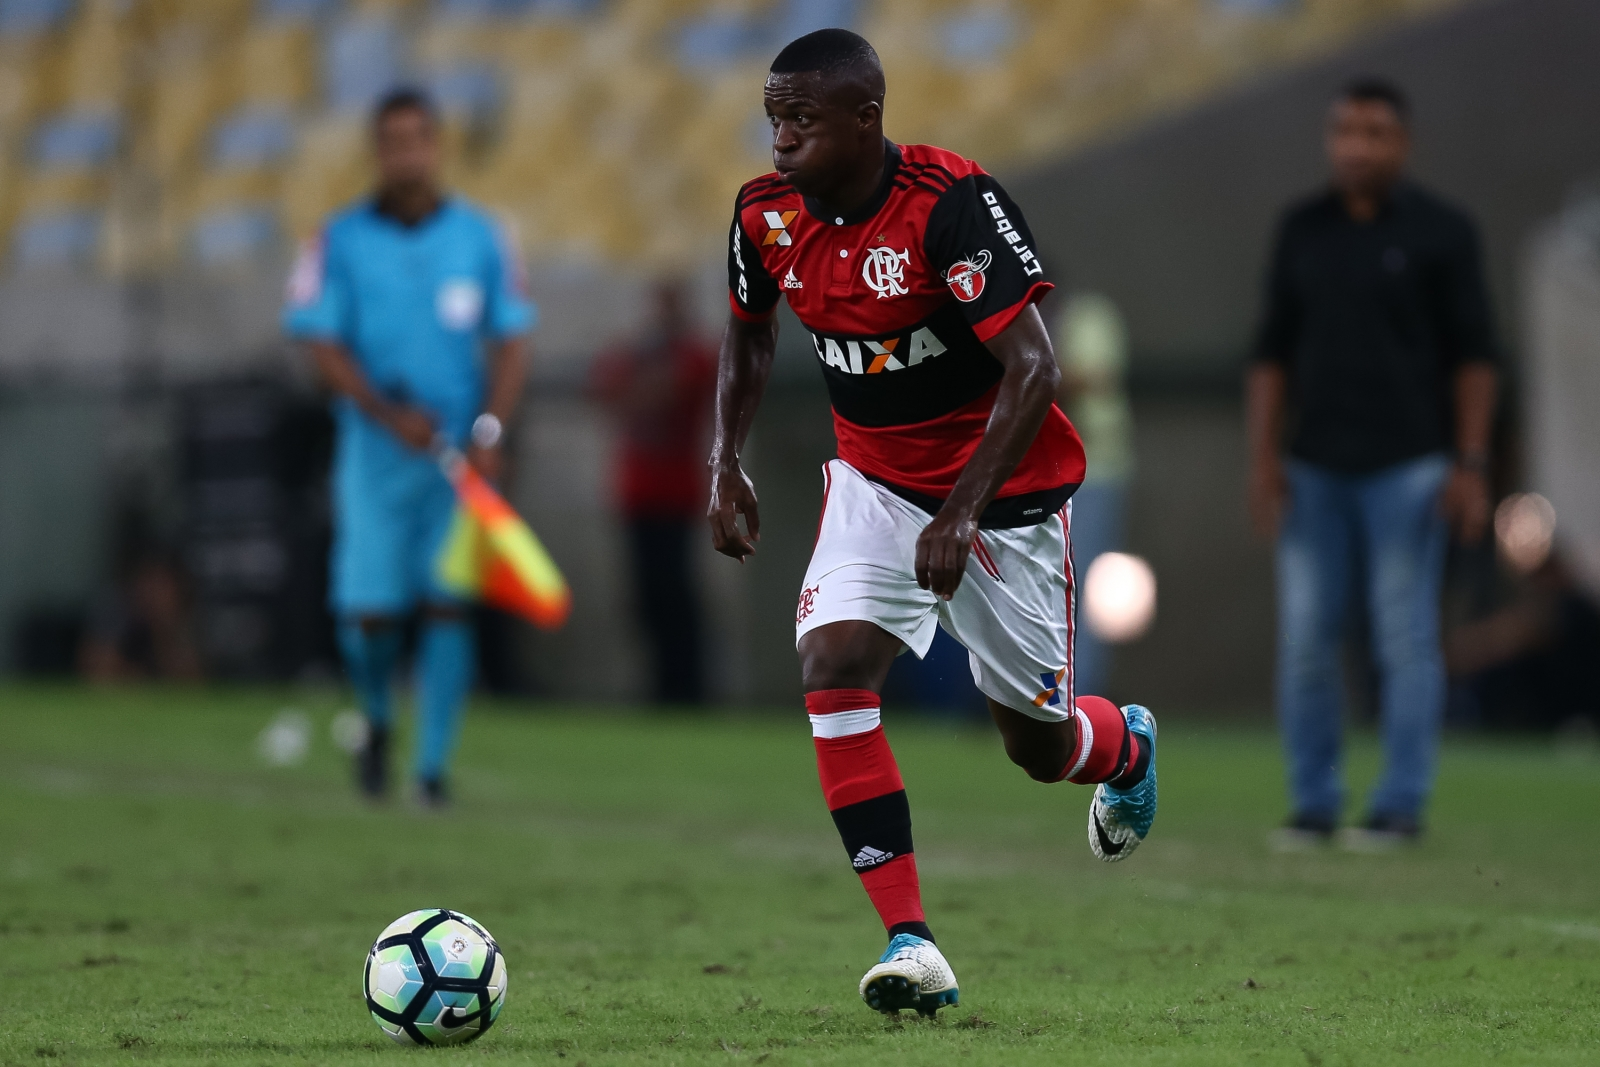 Barcelona Offered More Money But Vinicius Junior Preferred Real Madrid Claims Agent